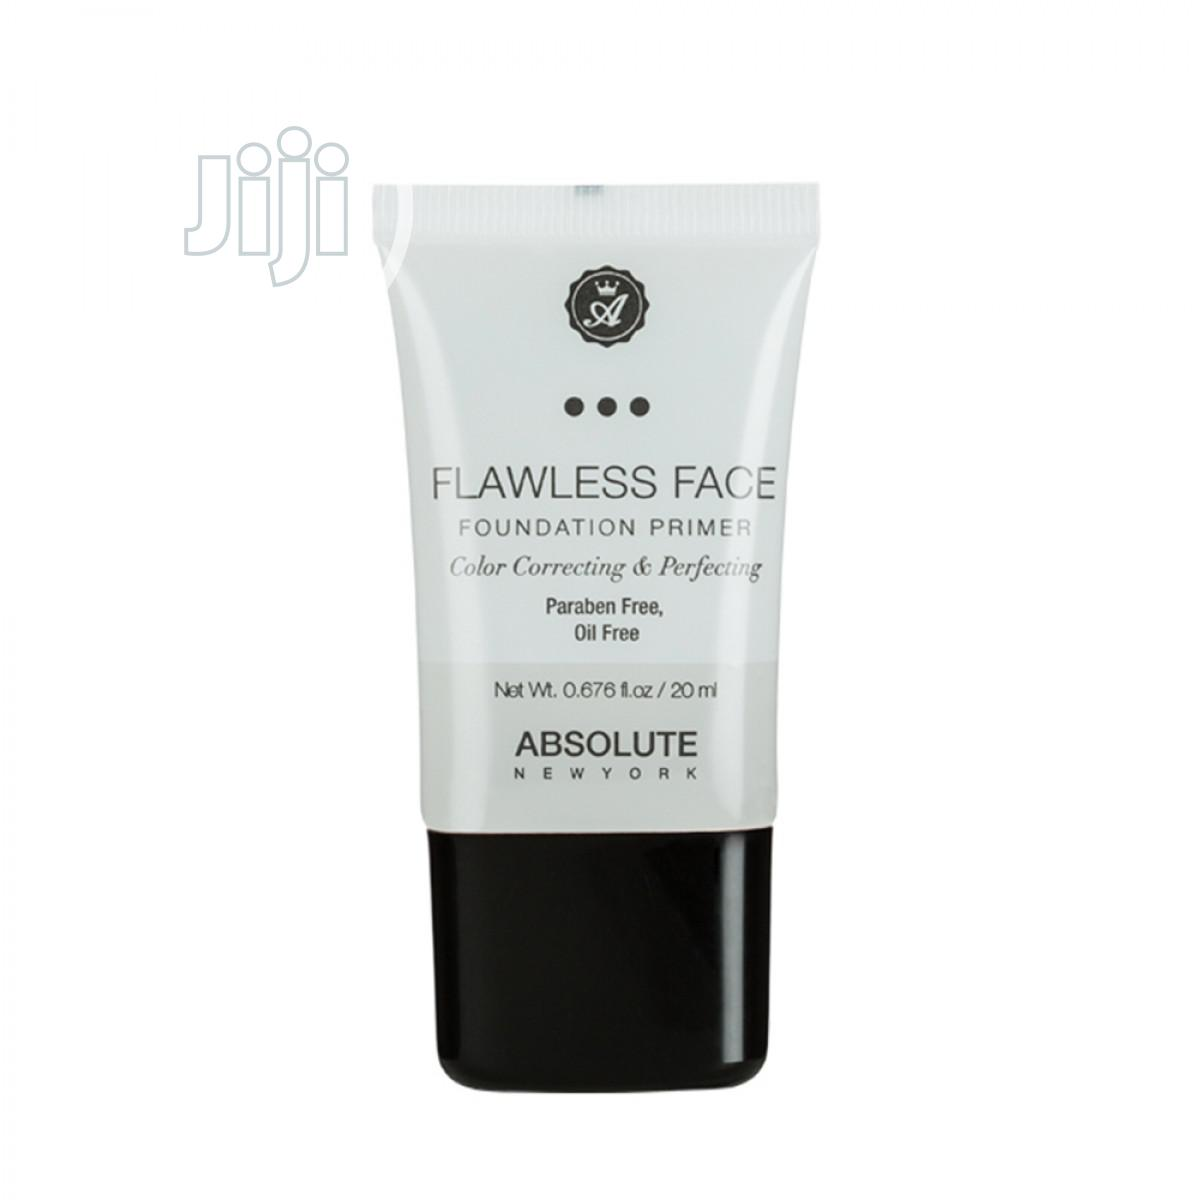 Archive: Absolute New York Flawless Face Foundation Primer - 20ML